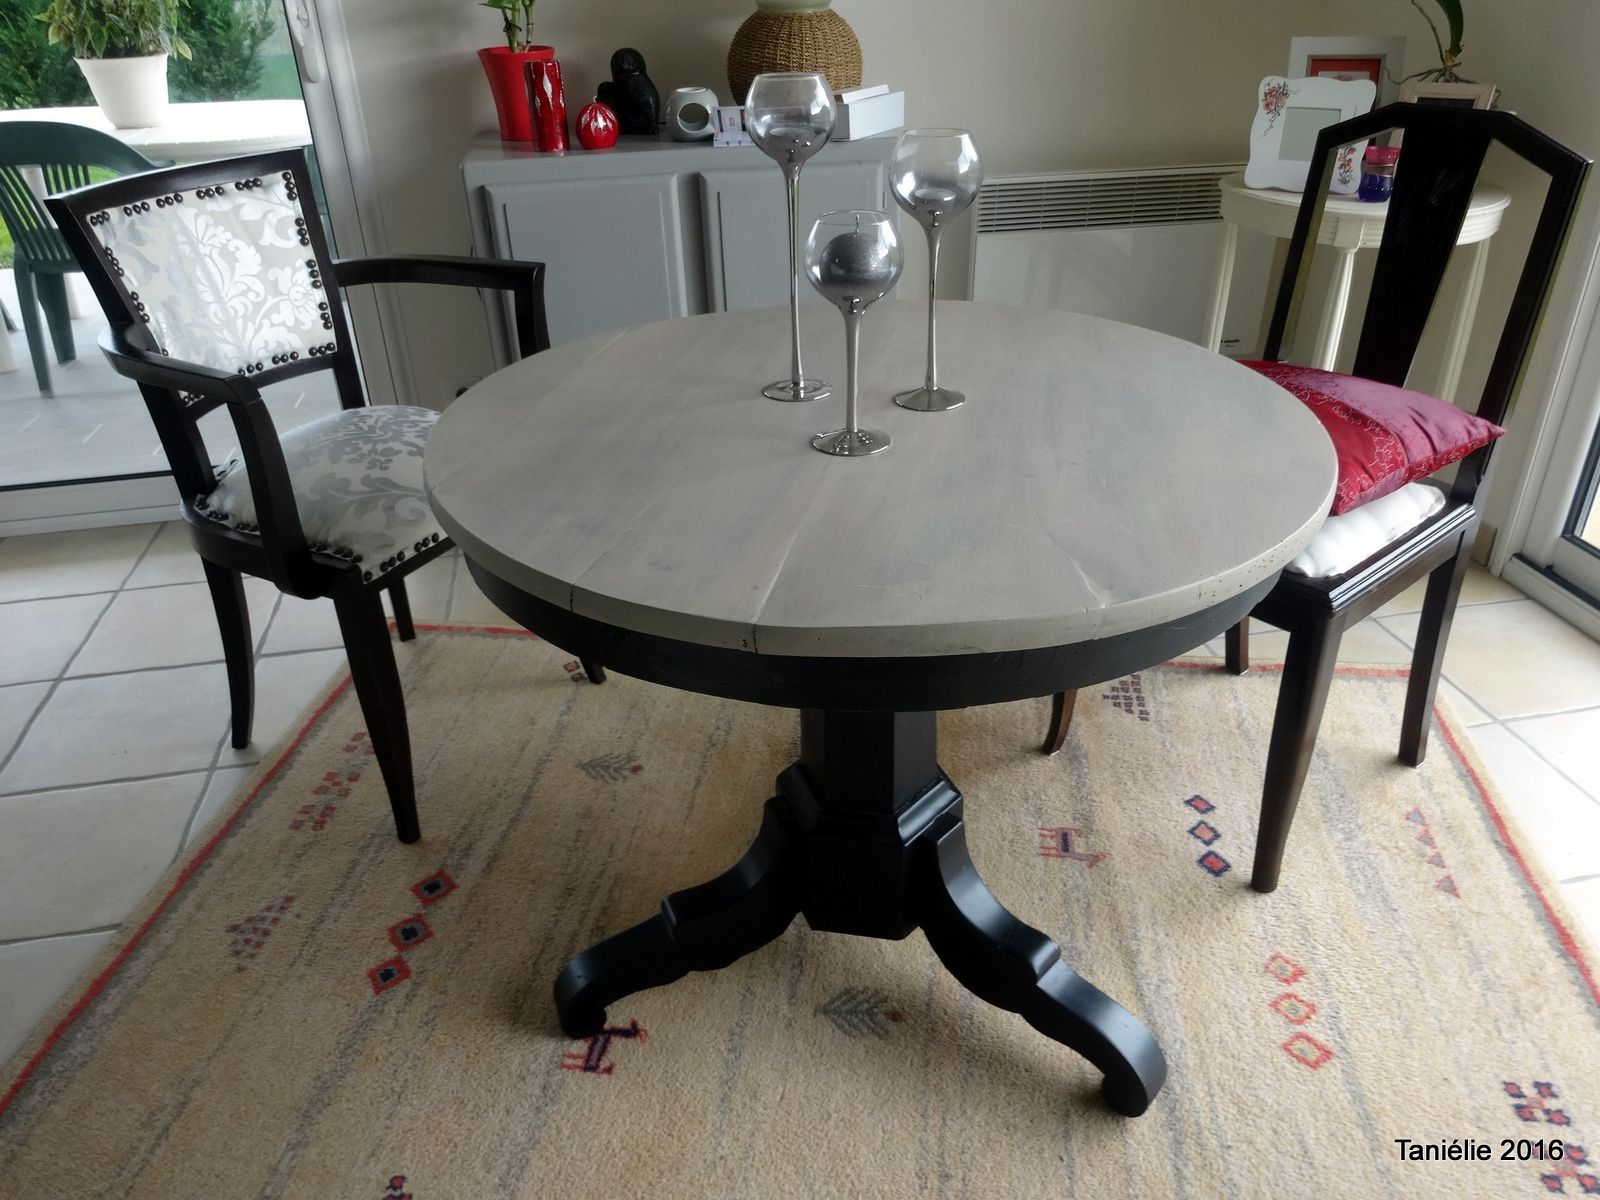 Table Un Pied Of La Vieille Table Ronde Relook E Avec Un Peu De Fil